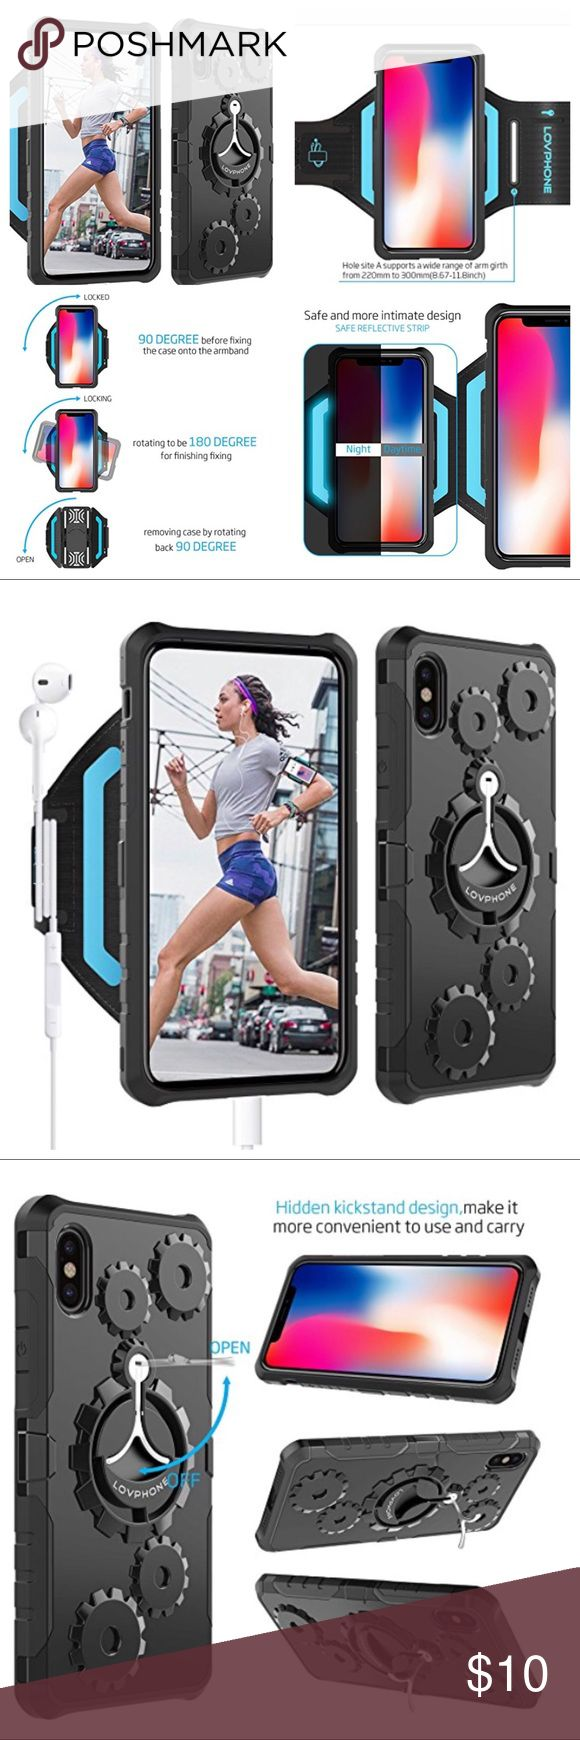 IPHONE X SET CASE AND ARMBAND KICKSTAND REFLECTIVE Armband & Armour Case Set Multifunctional Sport Running Armband + Premium Protective Case with Kickstand for iPhone X. Sport Running armband with Premium PC+TPU protective Case. The 2 Piece Slim Shield &/or as a armband, or use the phone case separately by rotating 90 degree to take the case off to use as sports armband. Case is made from the highest quality material to ensure the protection of your phone. It is designed for easy…